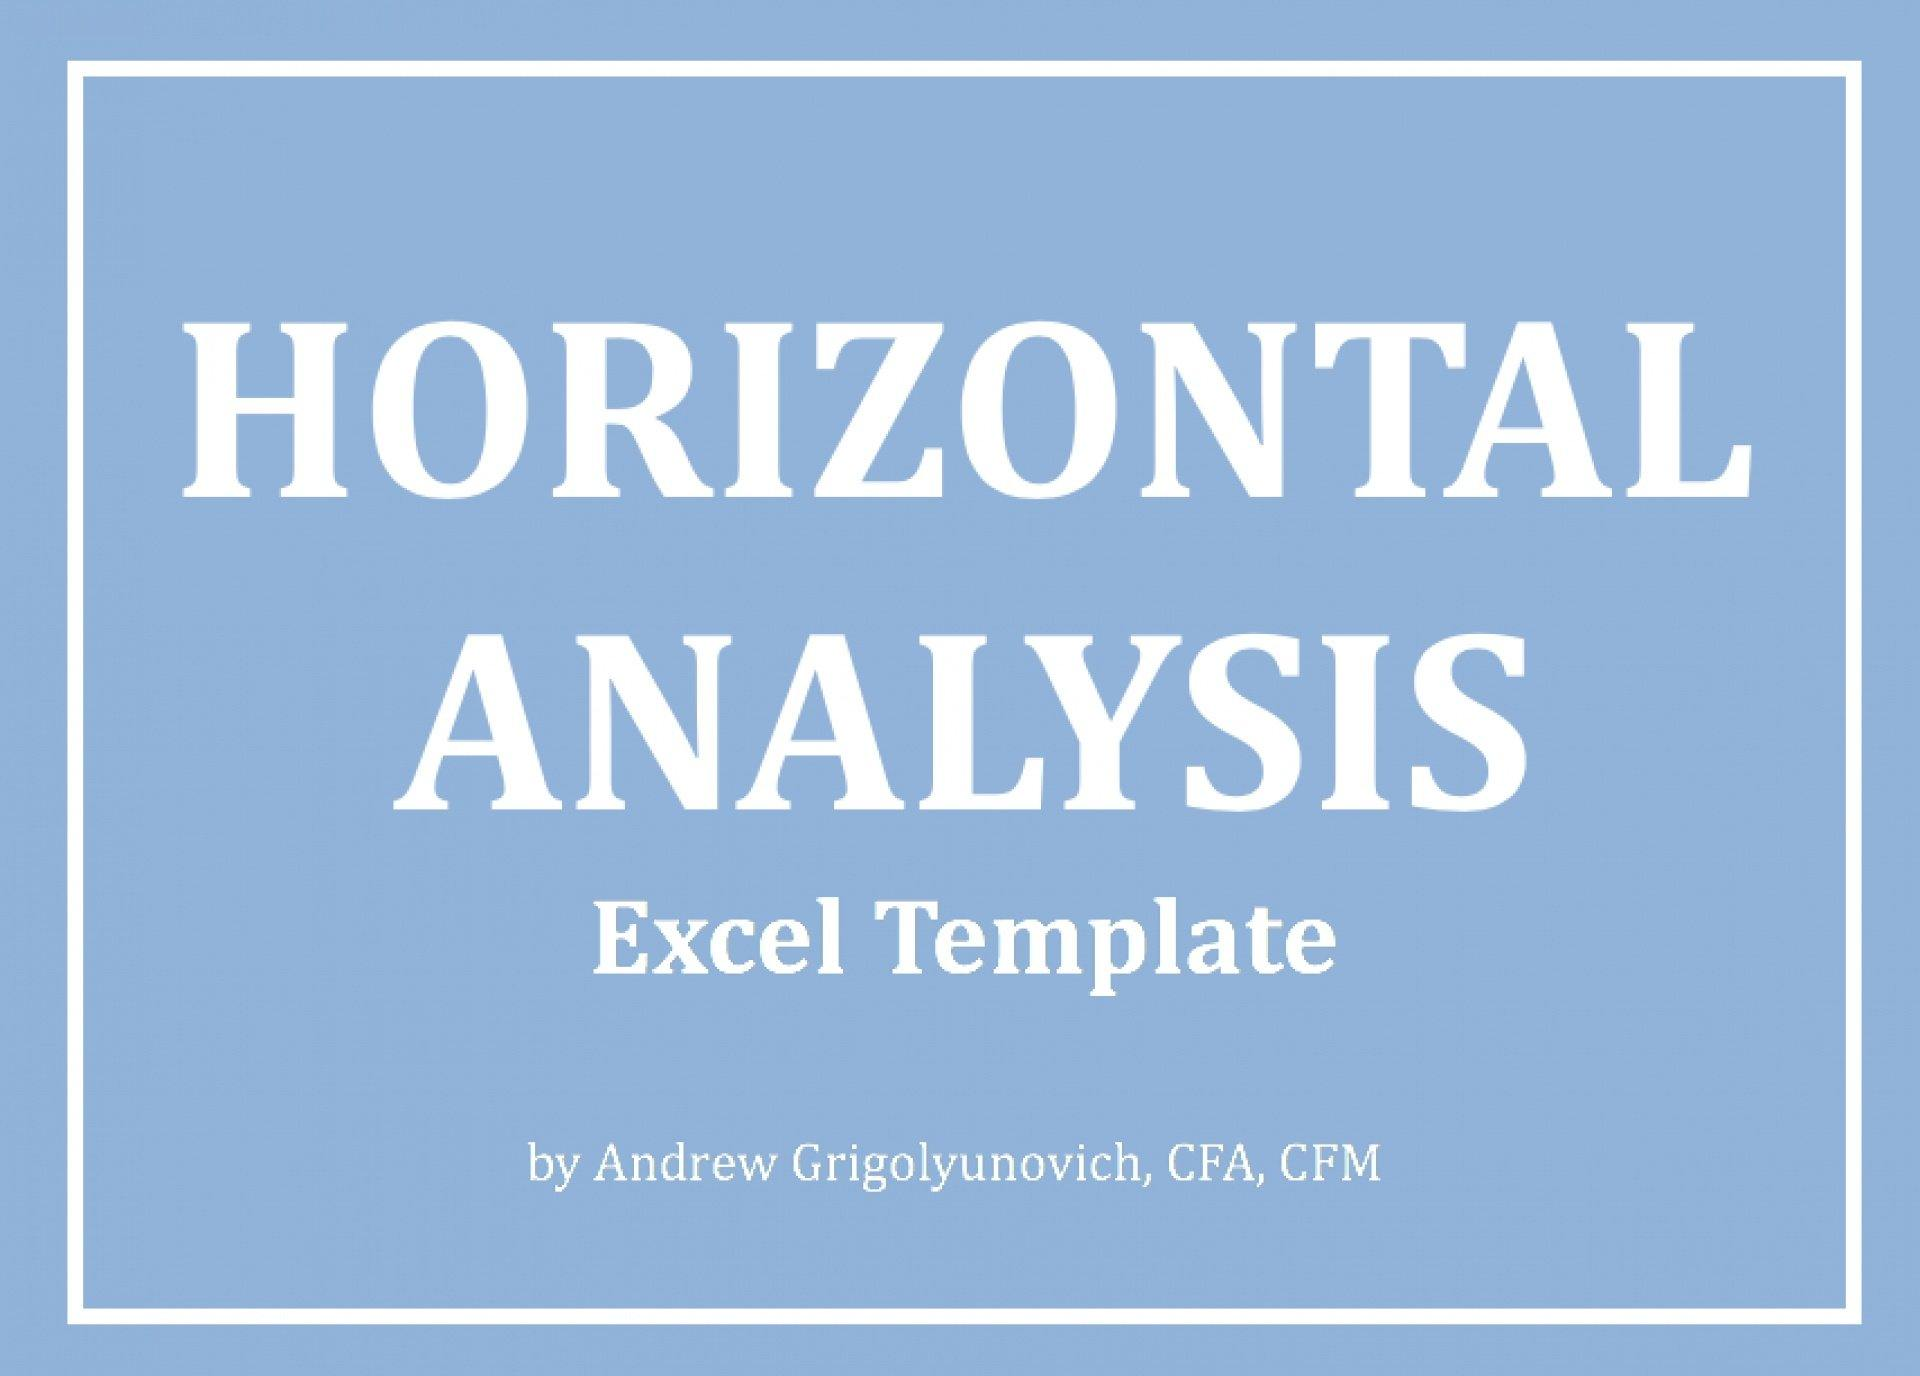 Horizontal Analysis Excel Template - Templarket -  Business Templates Marketplace